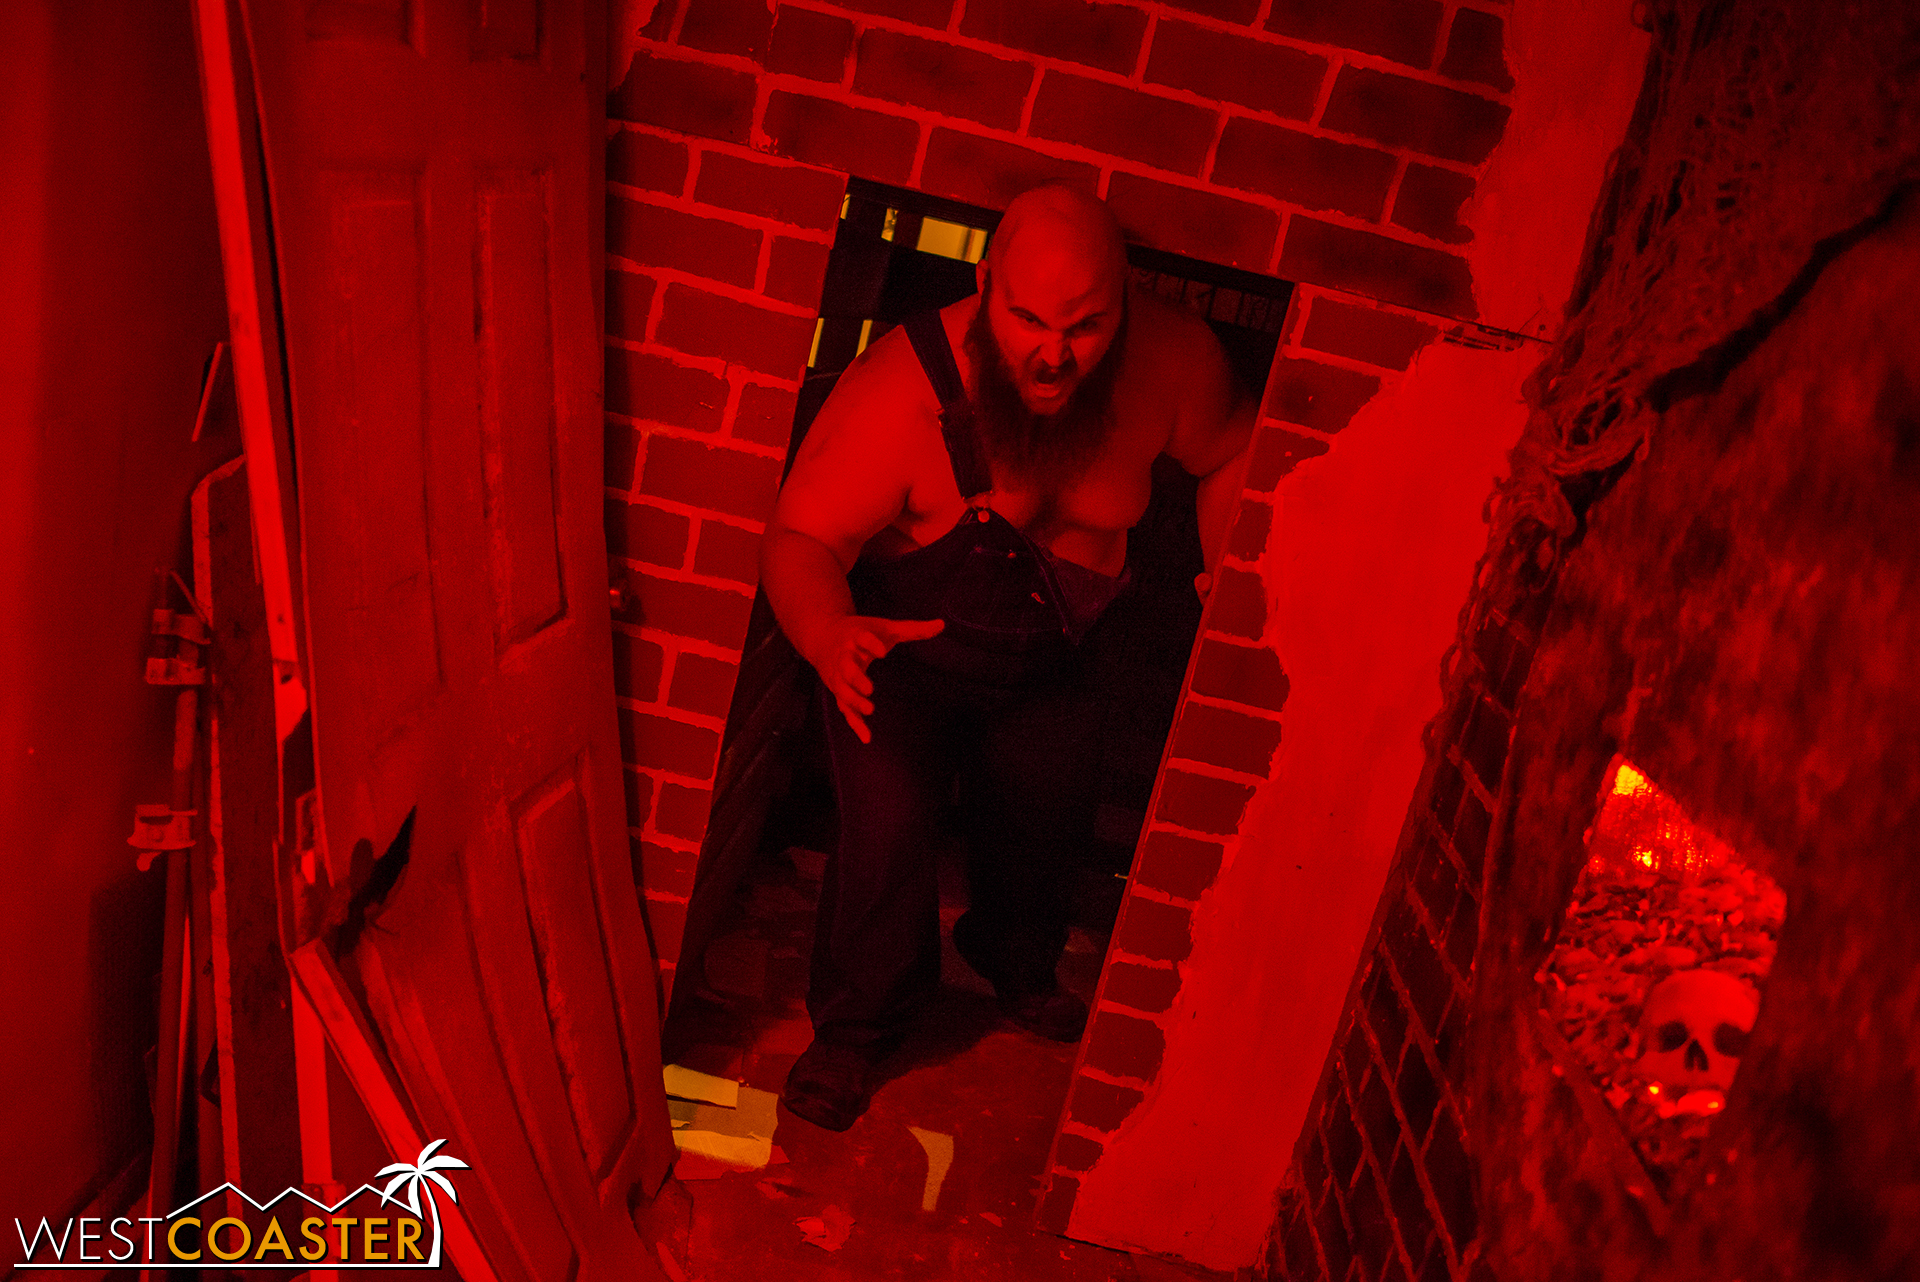 The Boiler Room provided a close encounter with one of the Higgins children.